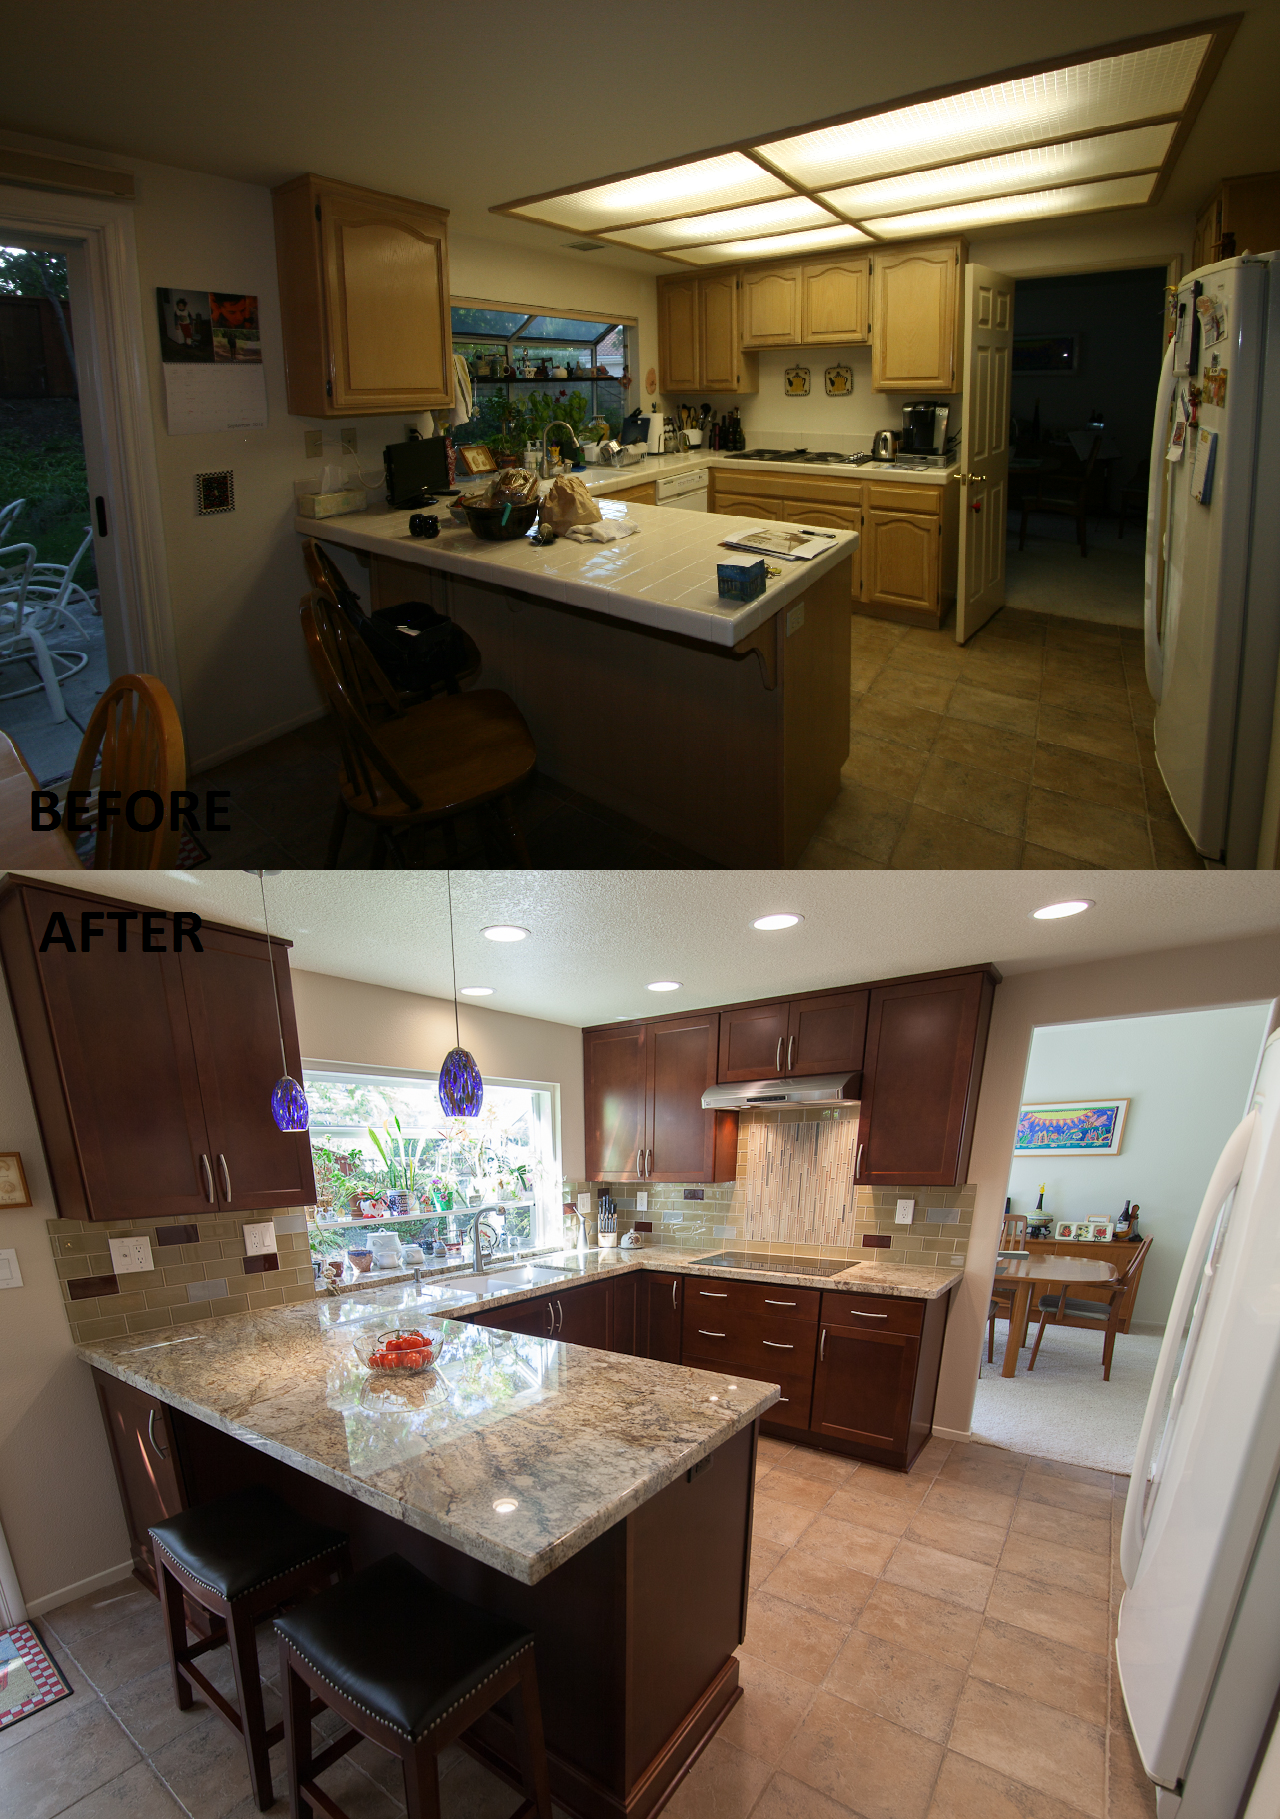 Kitchen Remodel done by Kitchens Etc of Ventura County The